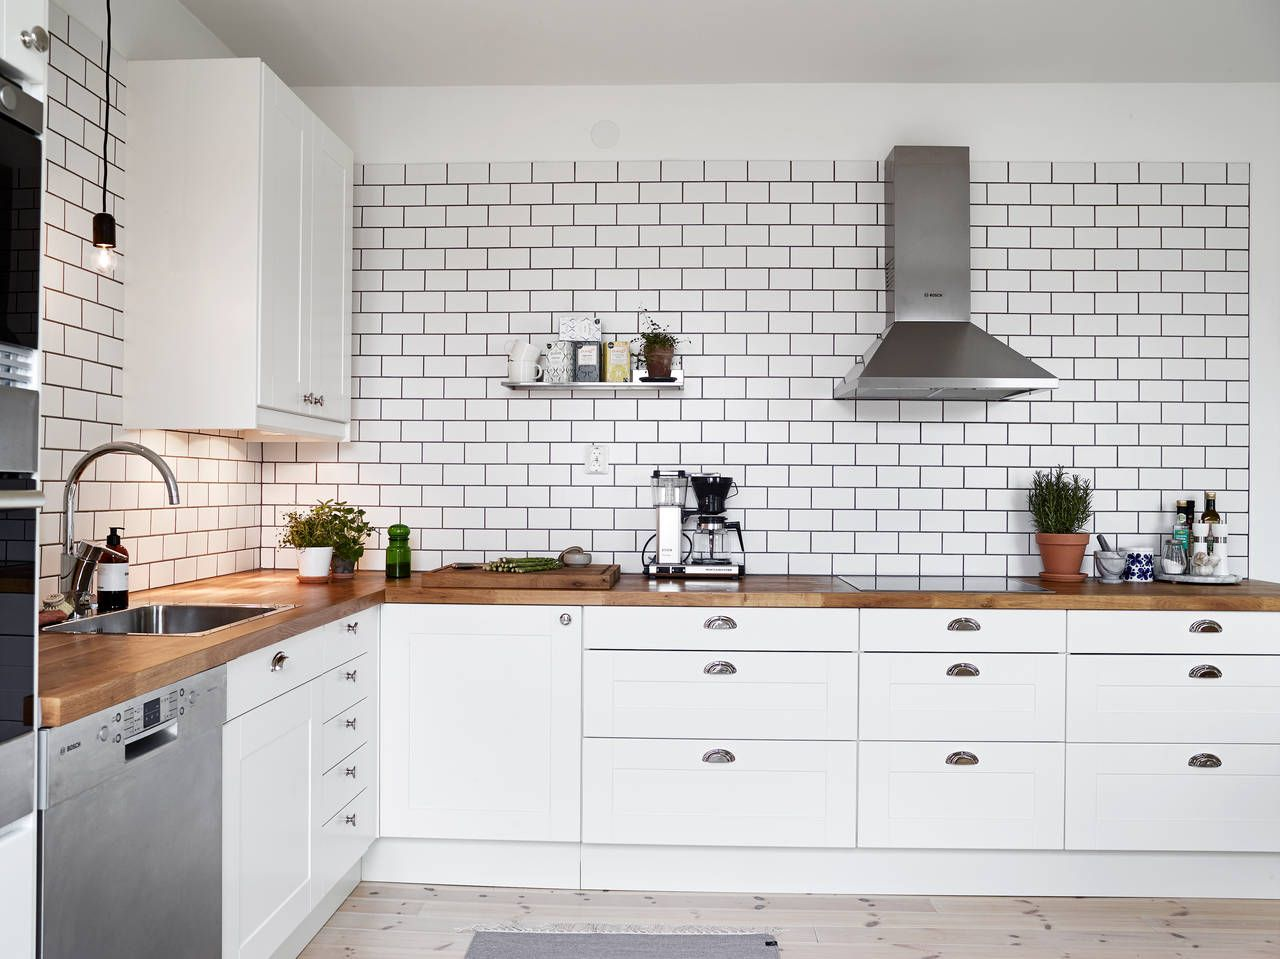 Grouting Kitchen Backsplash Property Glamorous A White Tiles Black Grout Kind Of Kitchen Coco Lapine Design . Decorating Inspiration